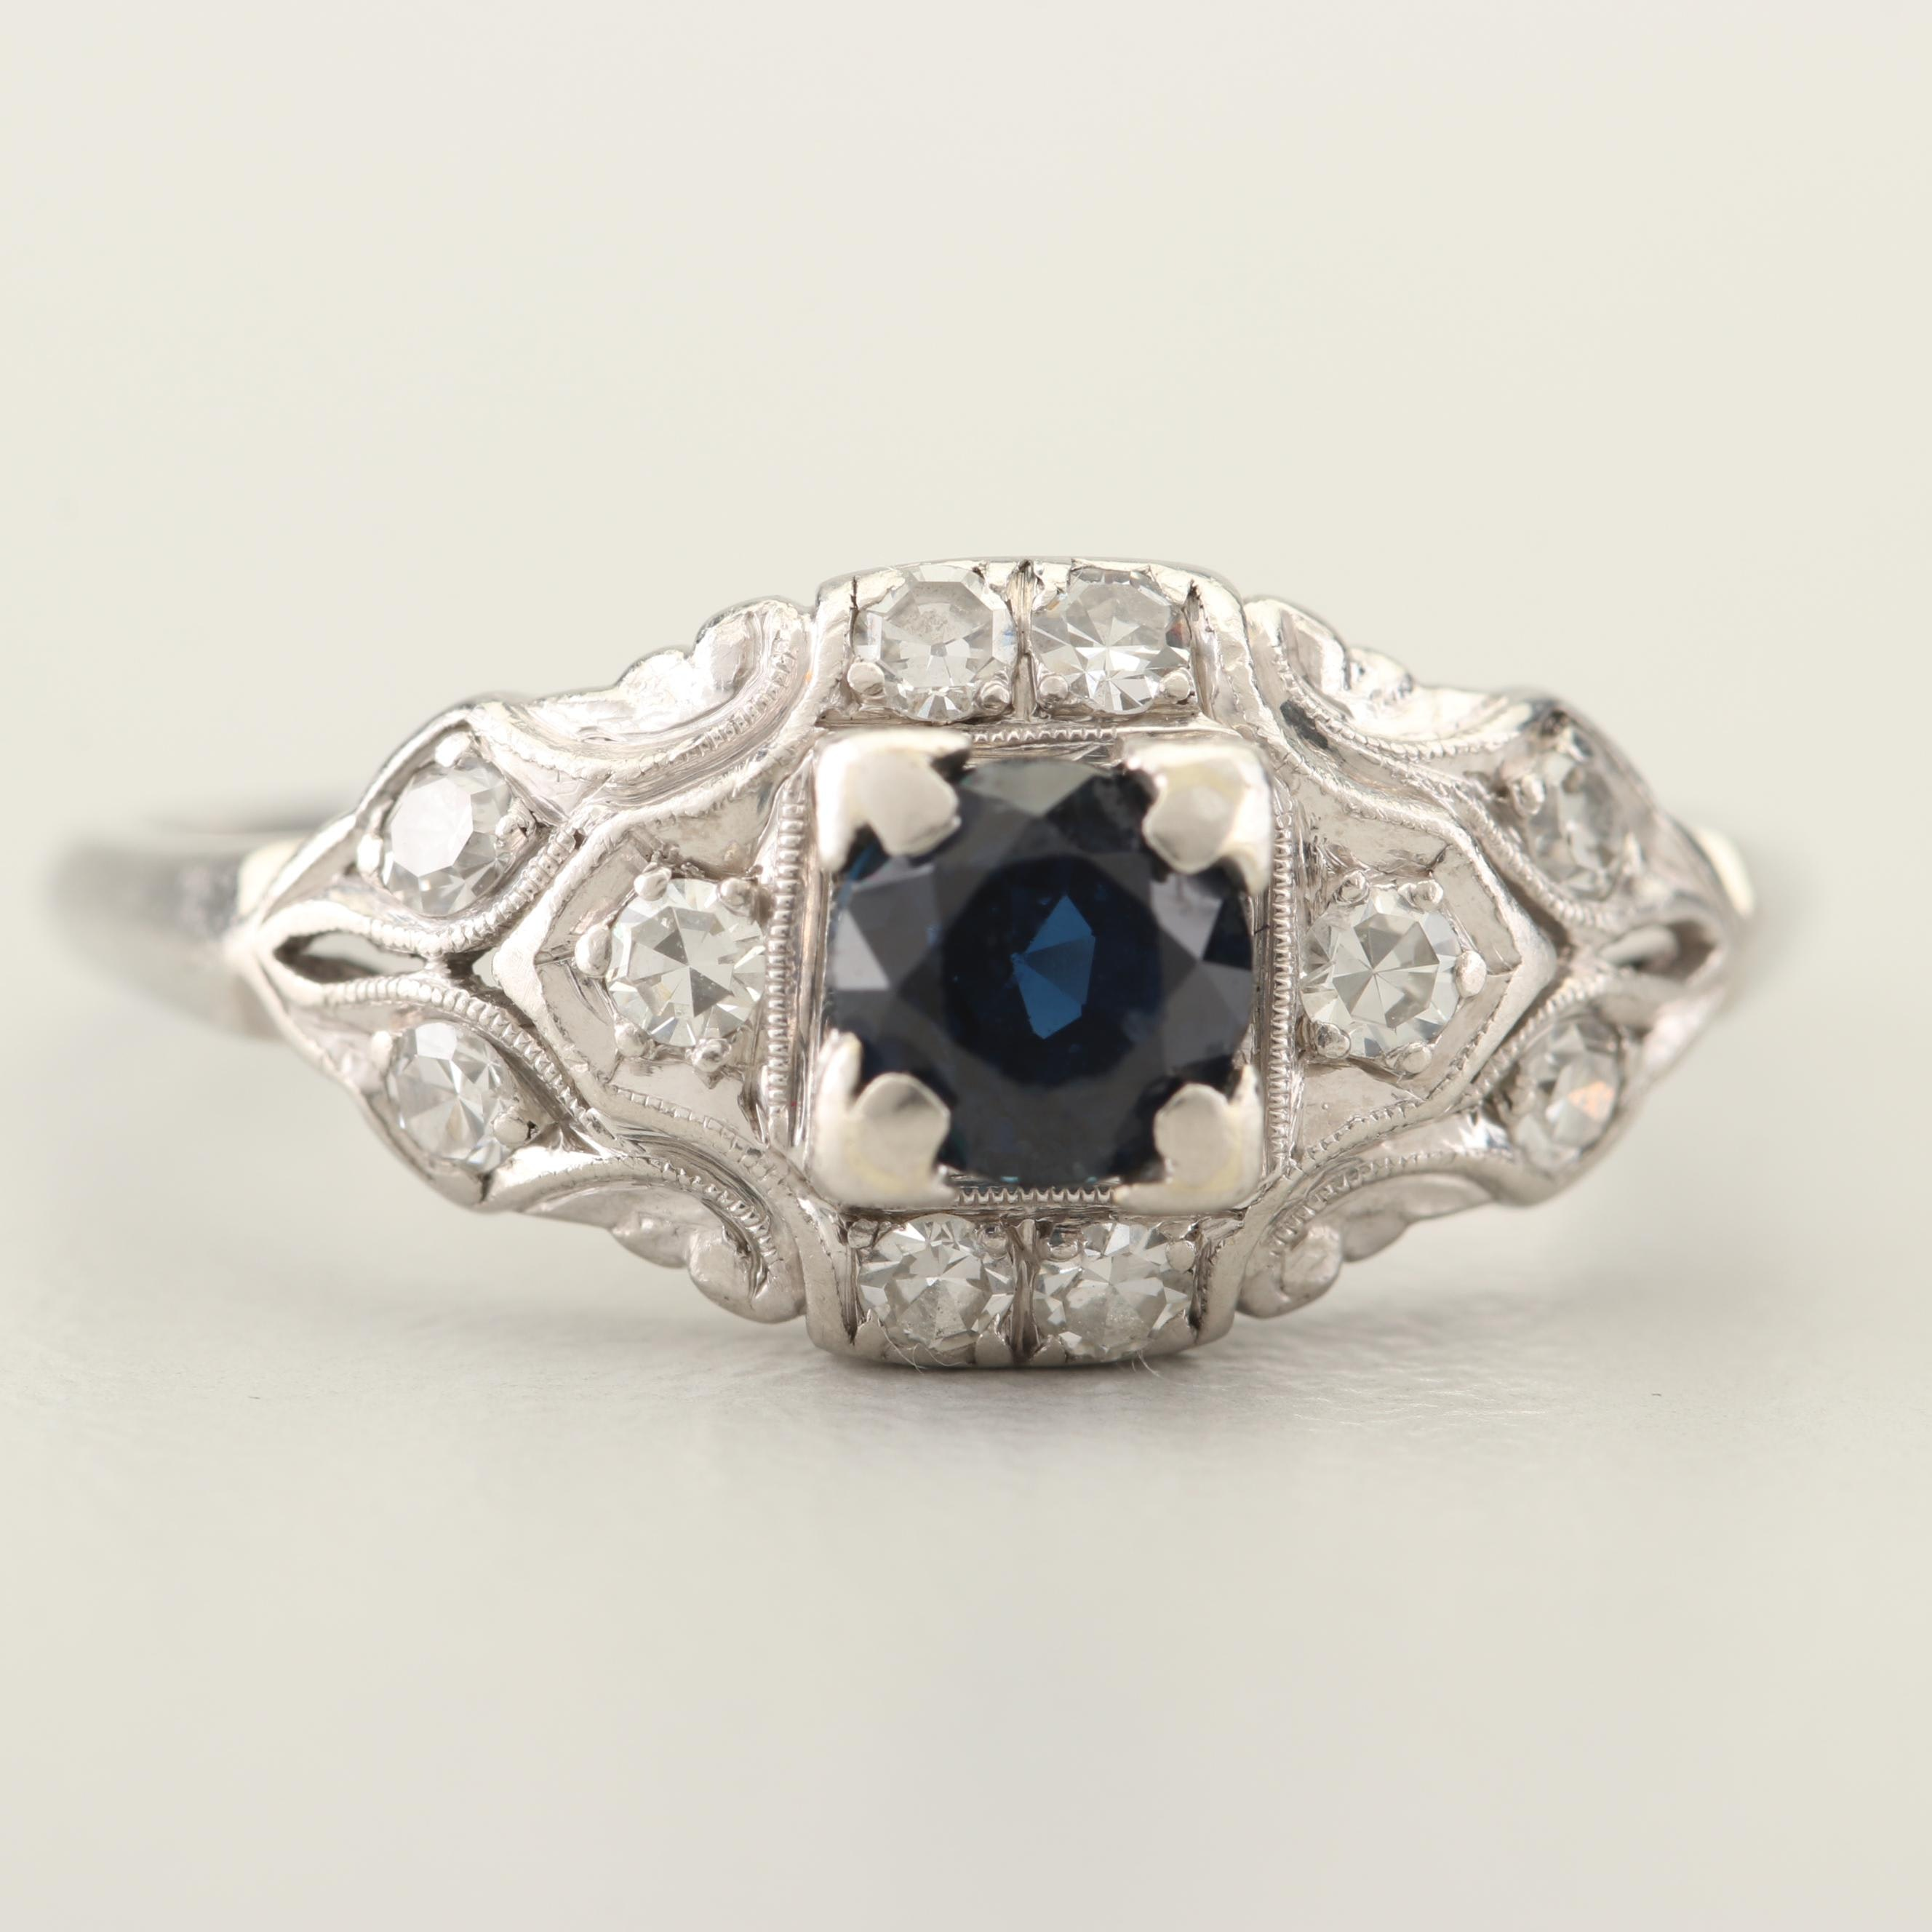 Circa 1930s Platinum Sapphire and Diamond Ring